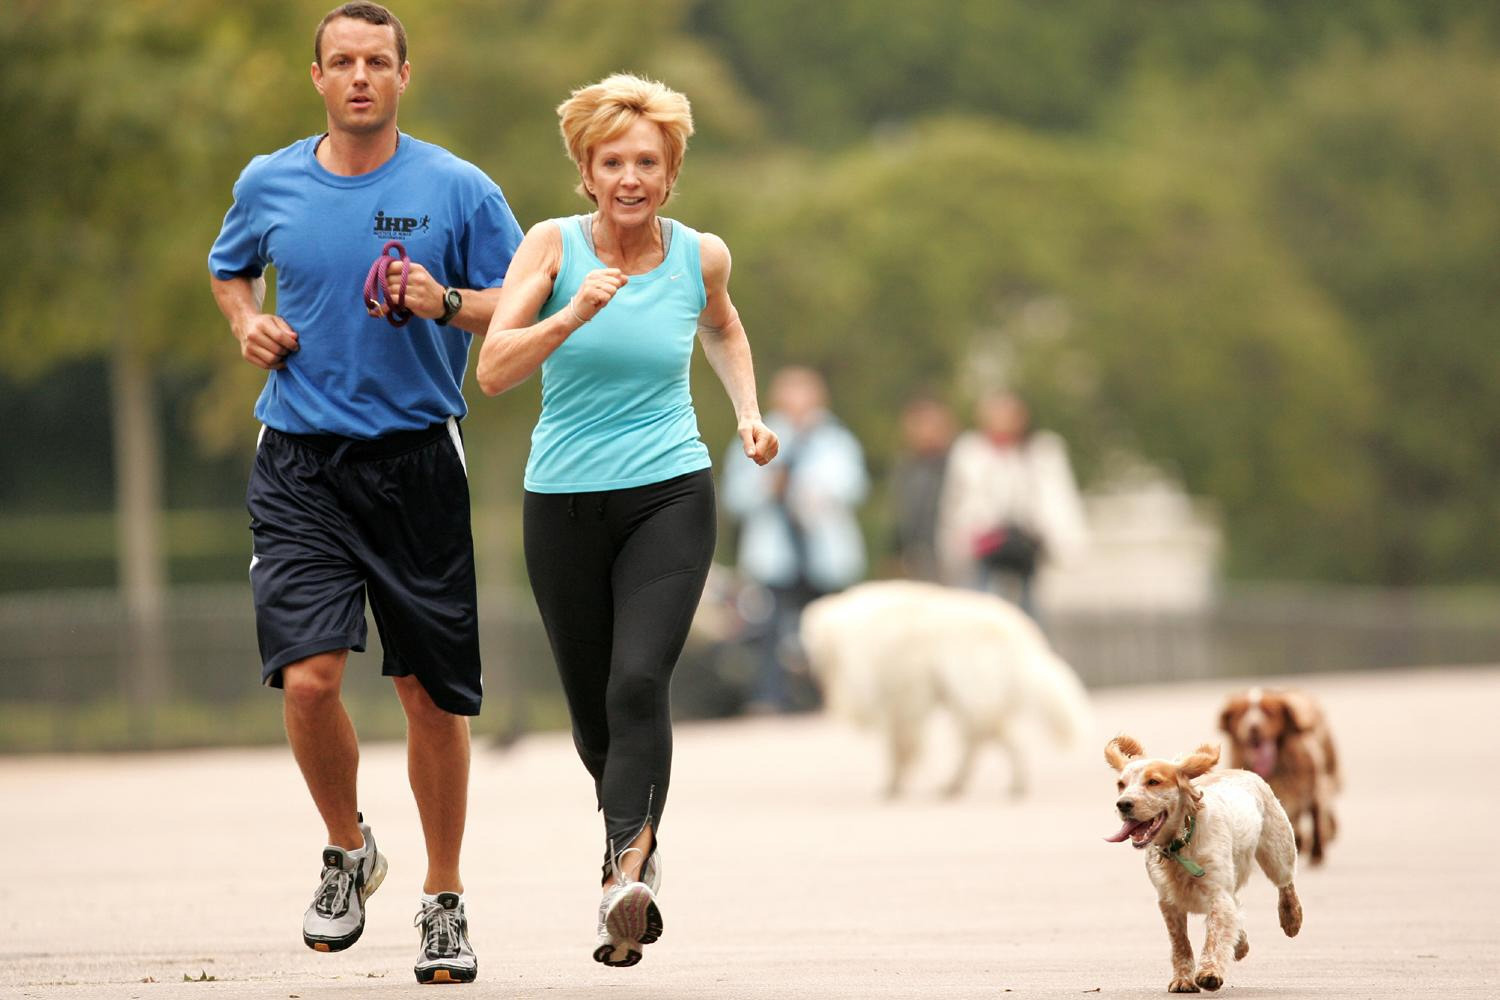 Anne Robinson, jogging with her personal trainer and dog (2007) (Terry Richards/PA)